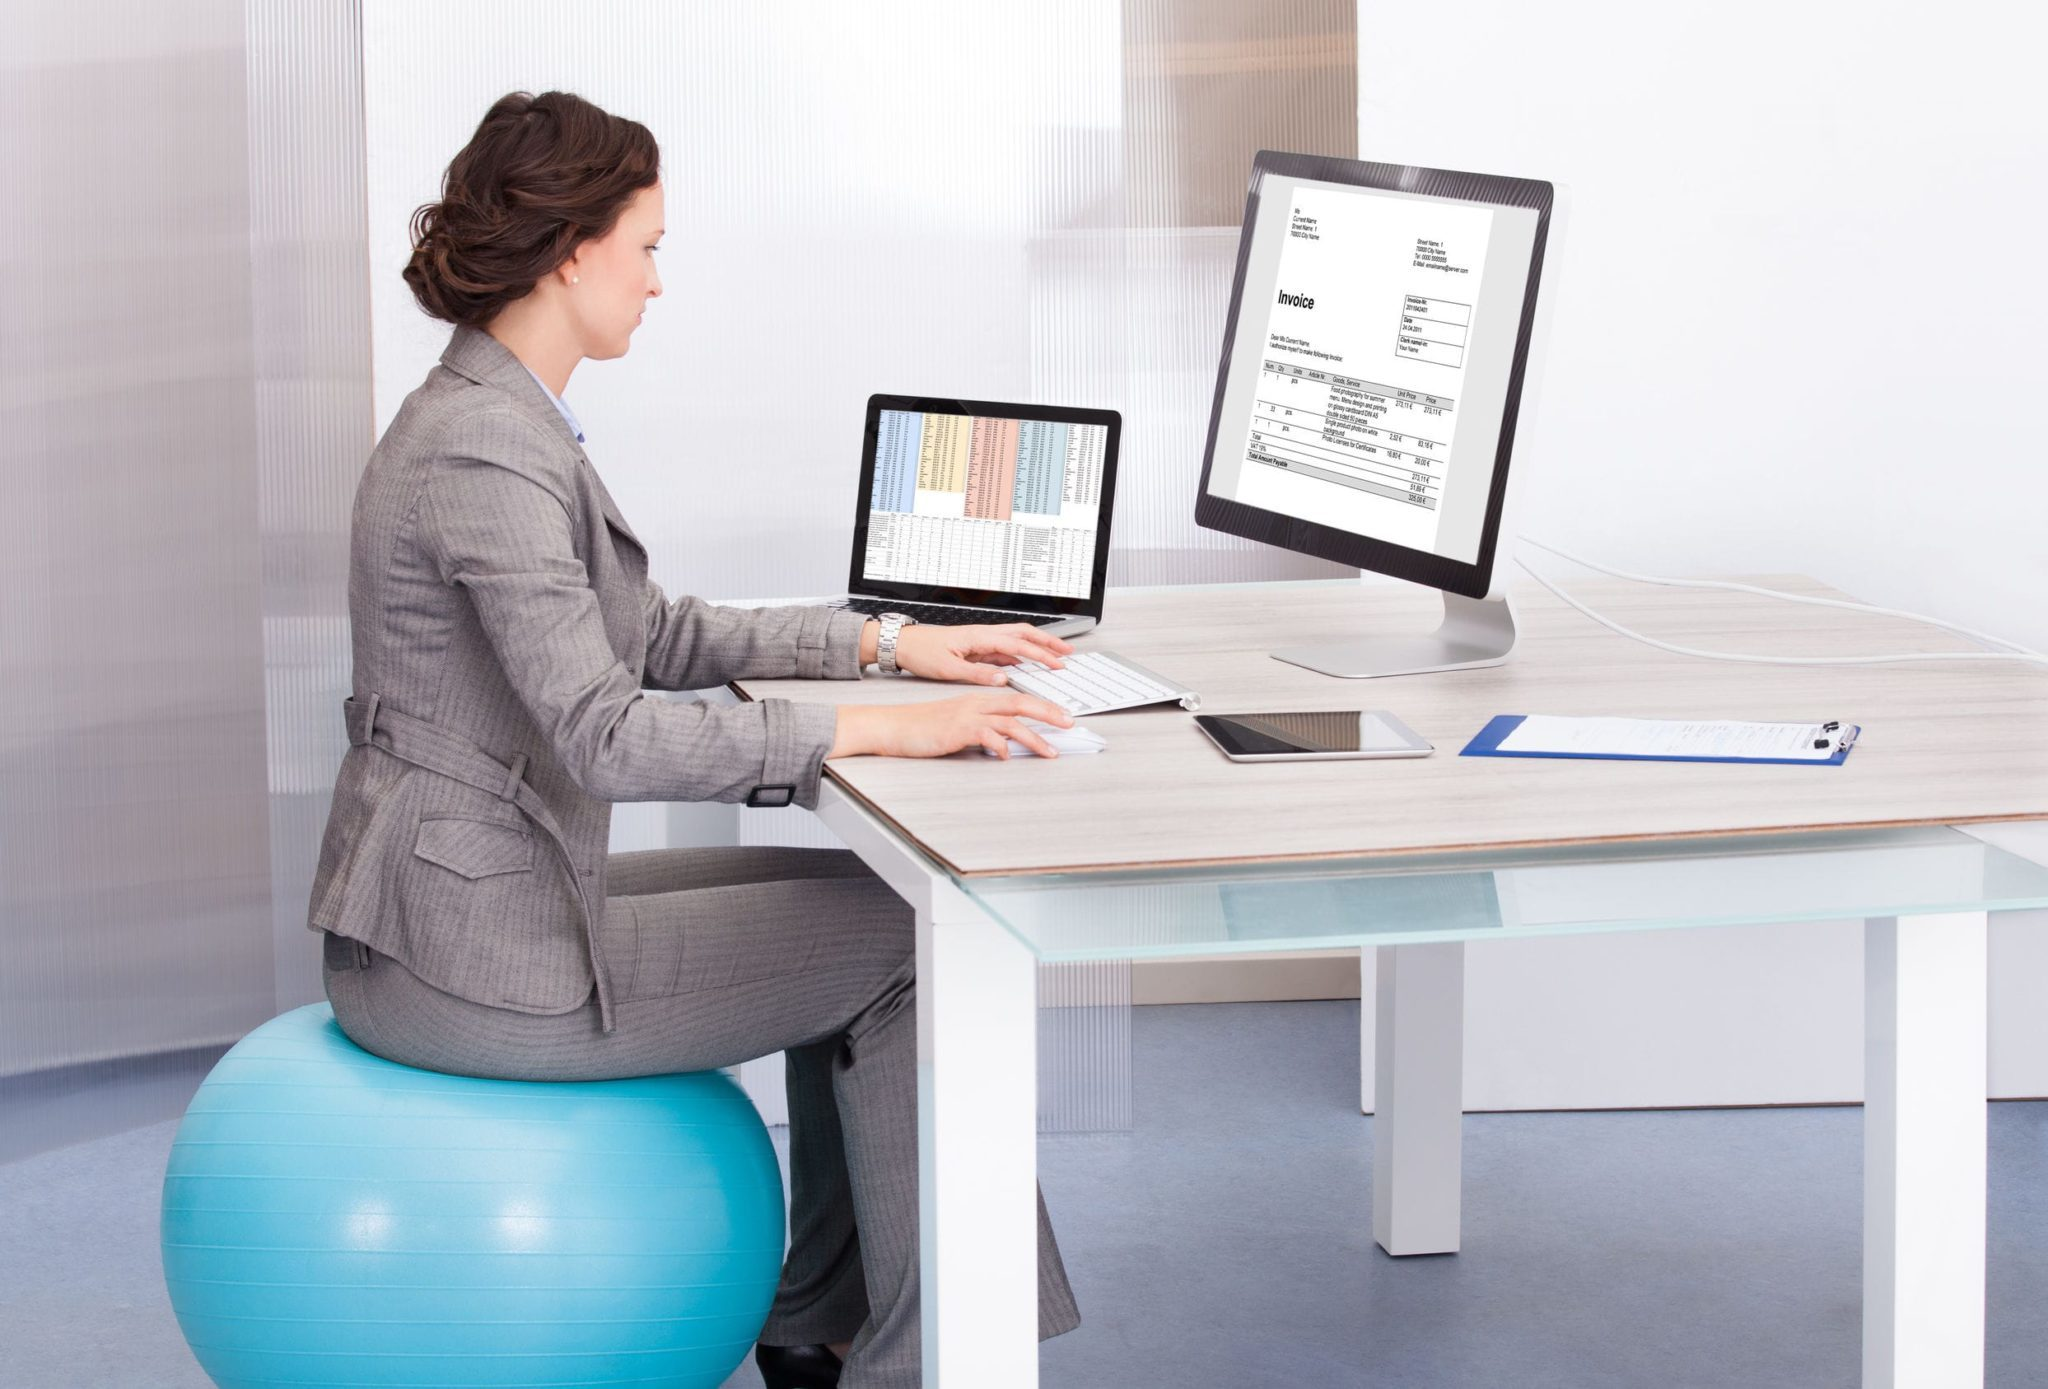 Exercise Ball Office ChairExercise Ball For Desk Chair Two New